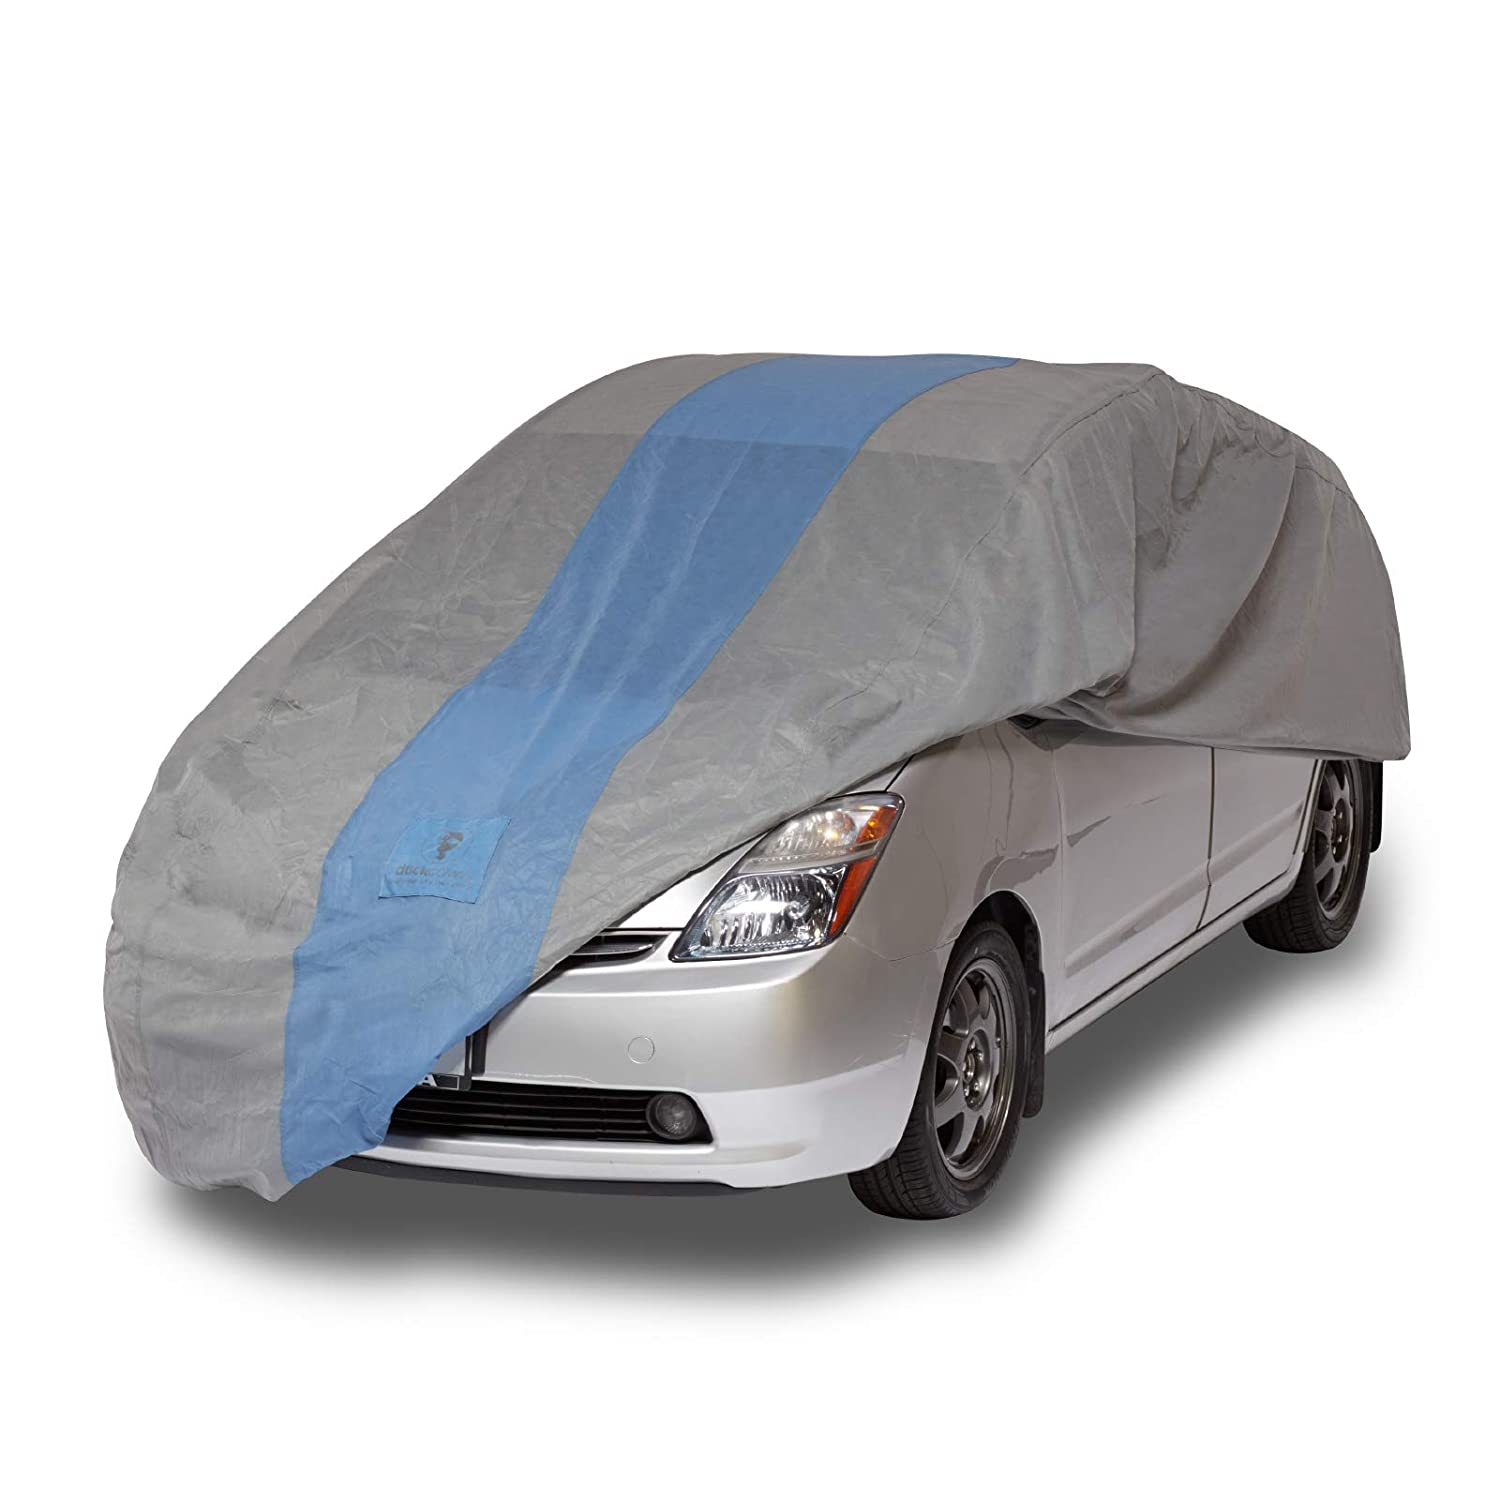 Duck Covers Defender Indoor Hatchback Cover, Limited 2 Year Warranty,  Fits Hatchbacks up to 13 ft. 5 in. A1HB161